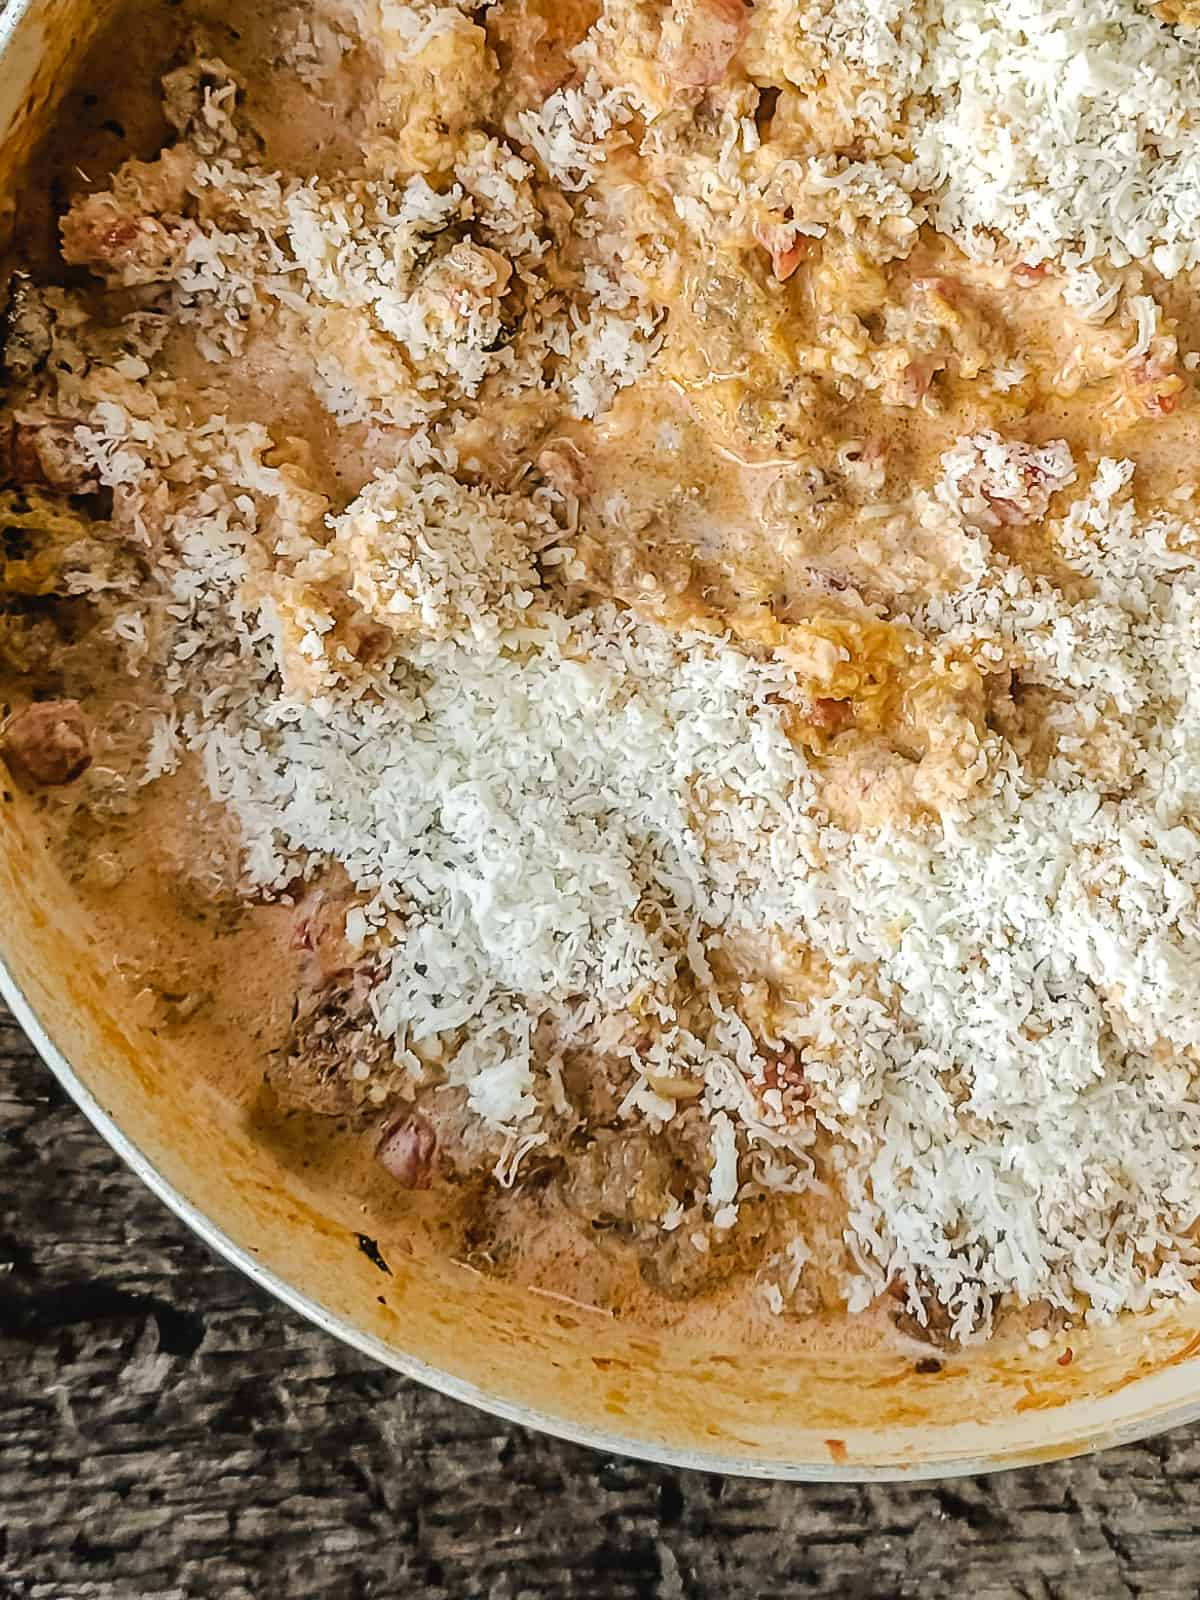 Creamy tomato sauce with ground sausage, sprinkled with Parmesan cheese.